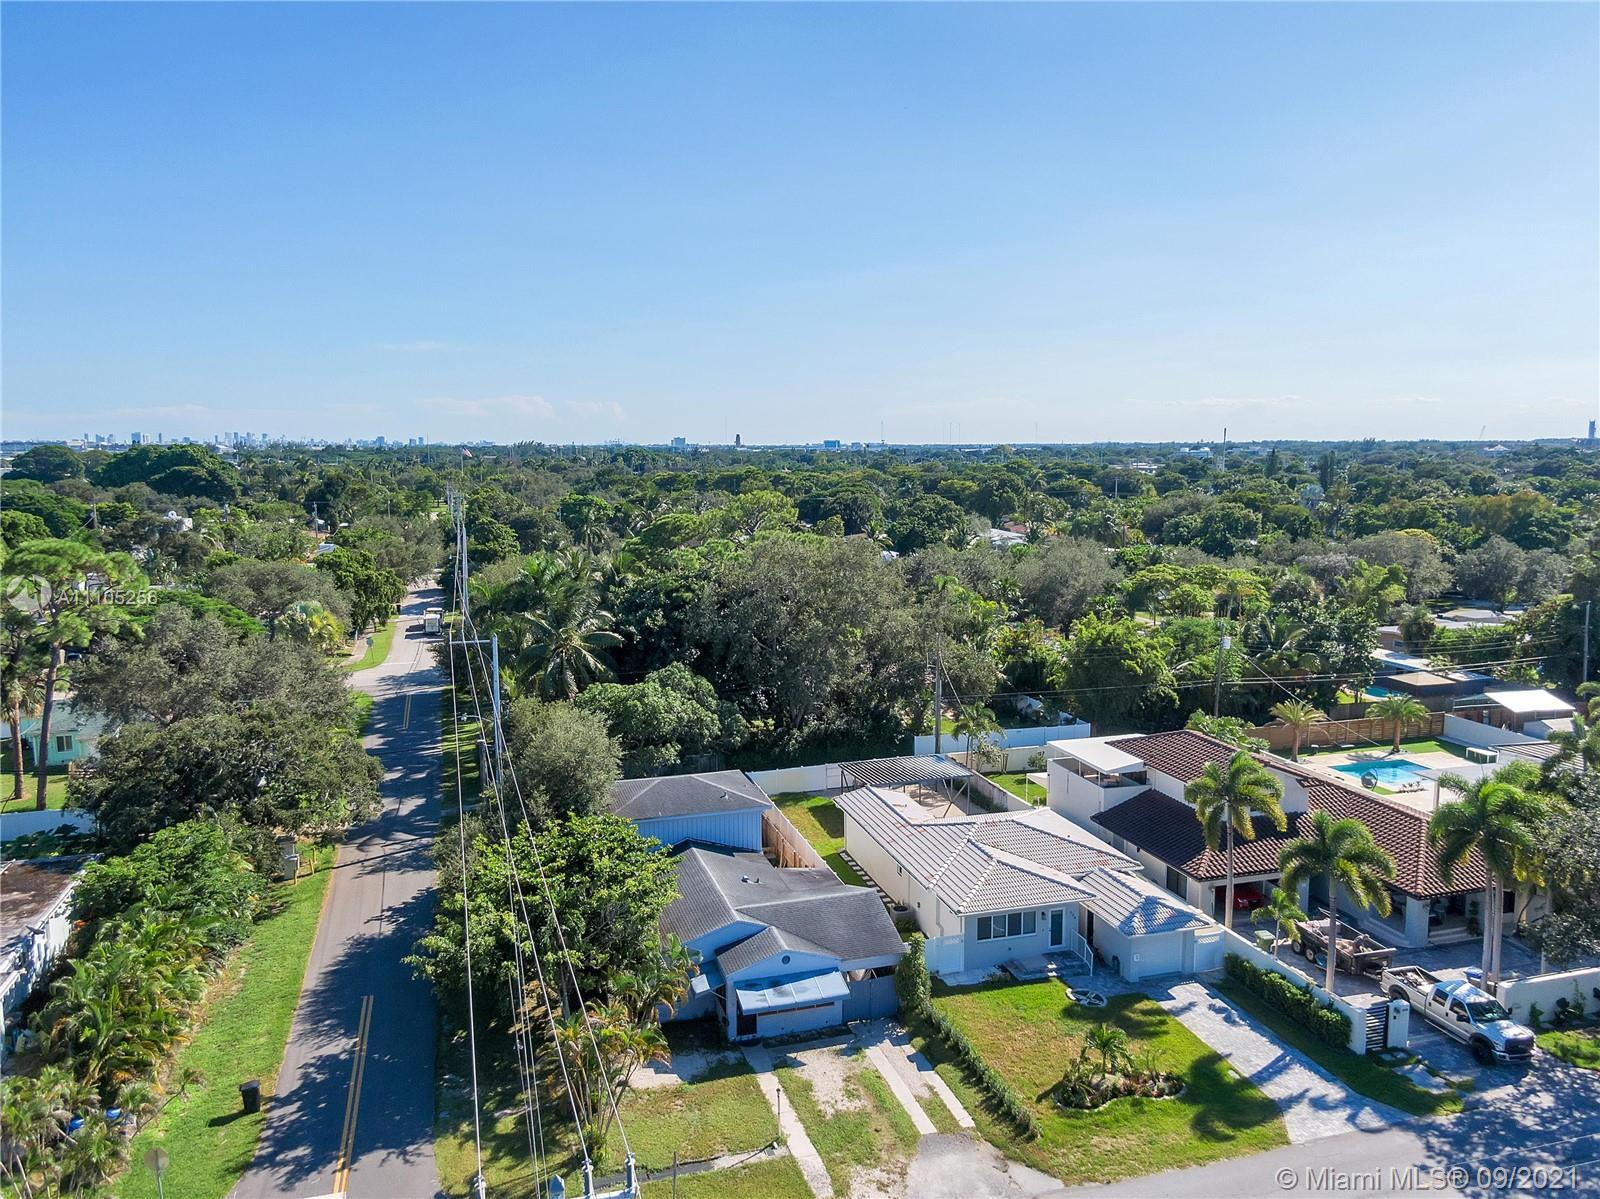 Investors Dream! This corner lot home needs major renovation but offers ample opportunities to turn